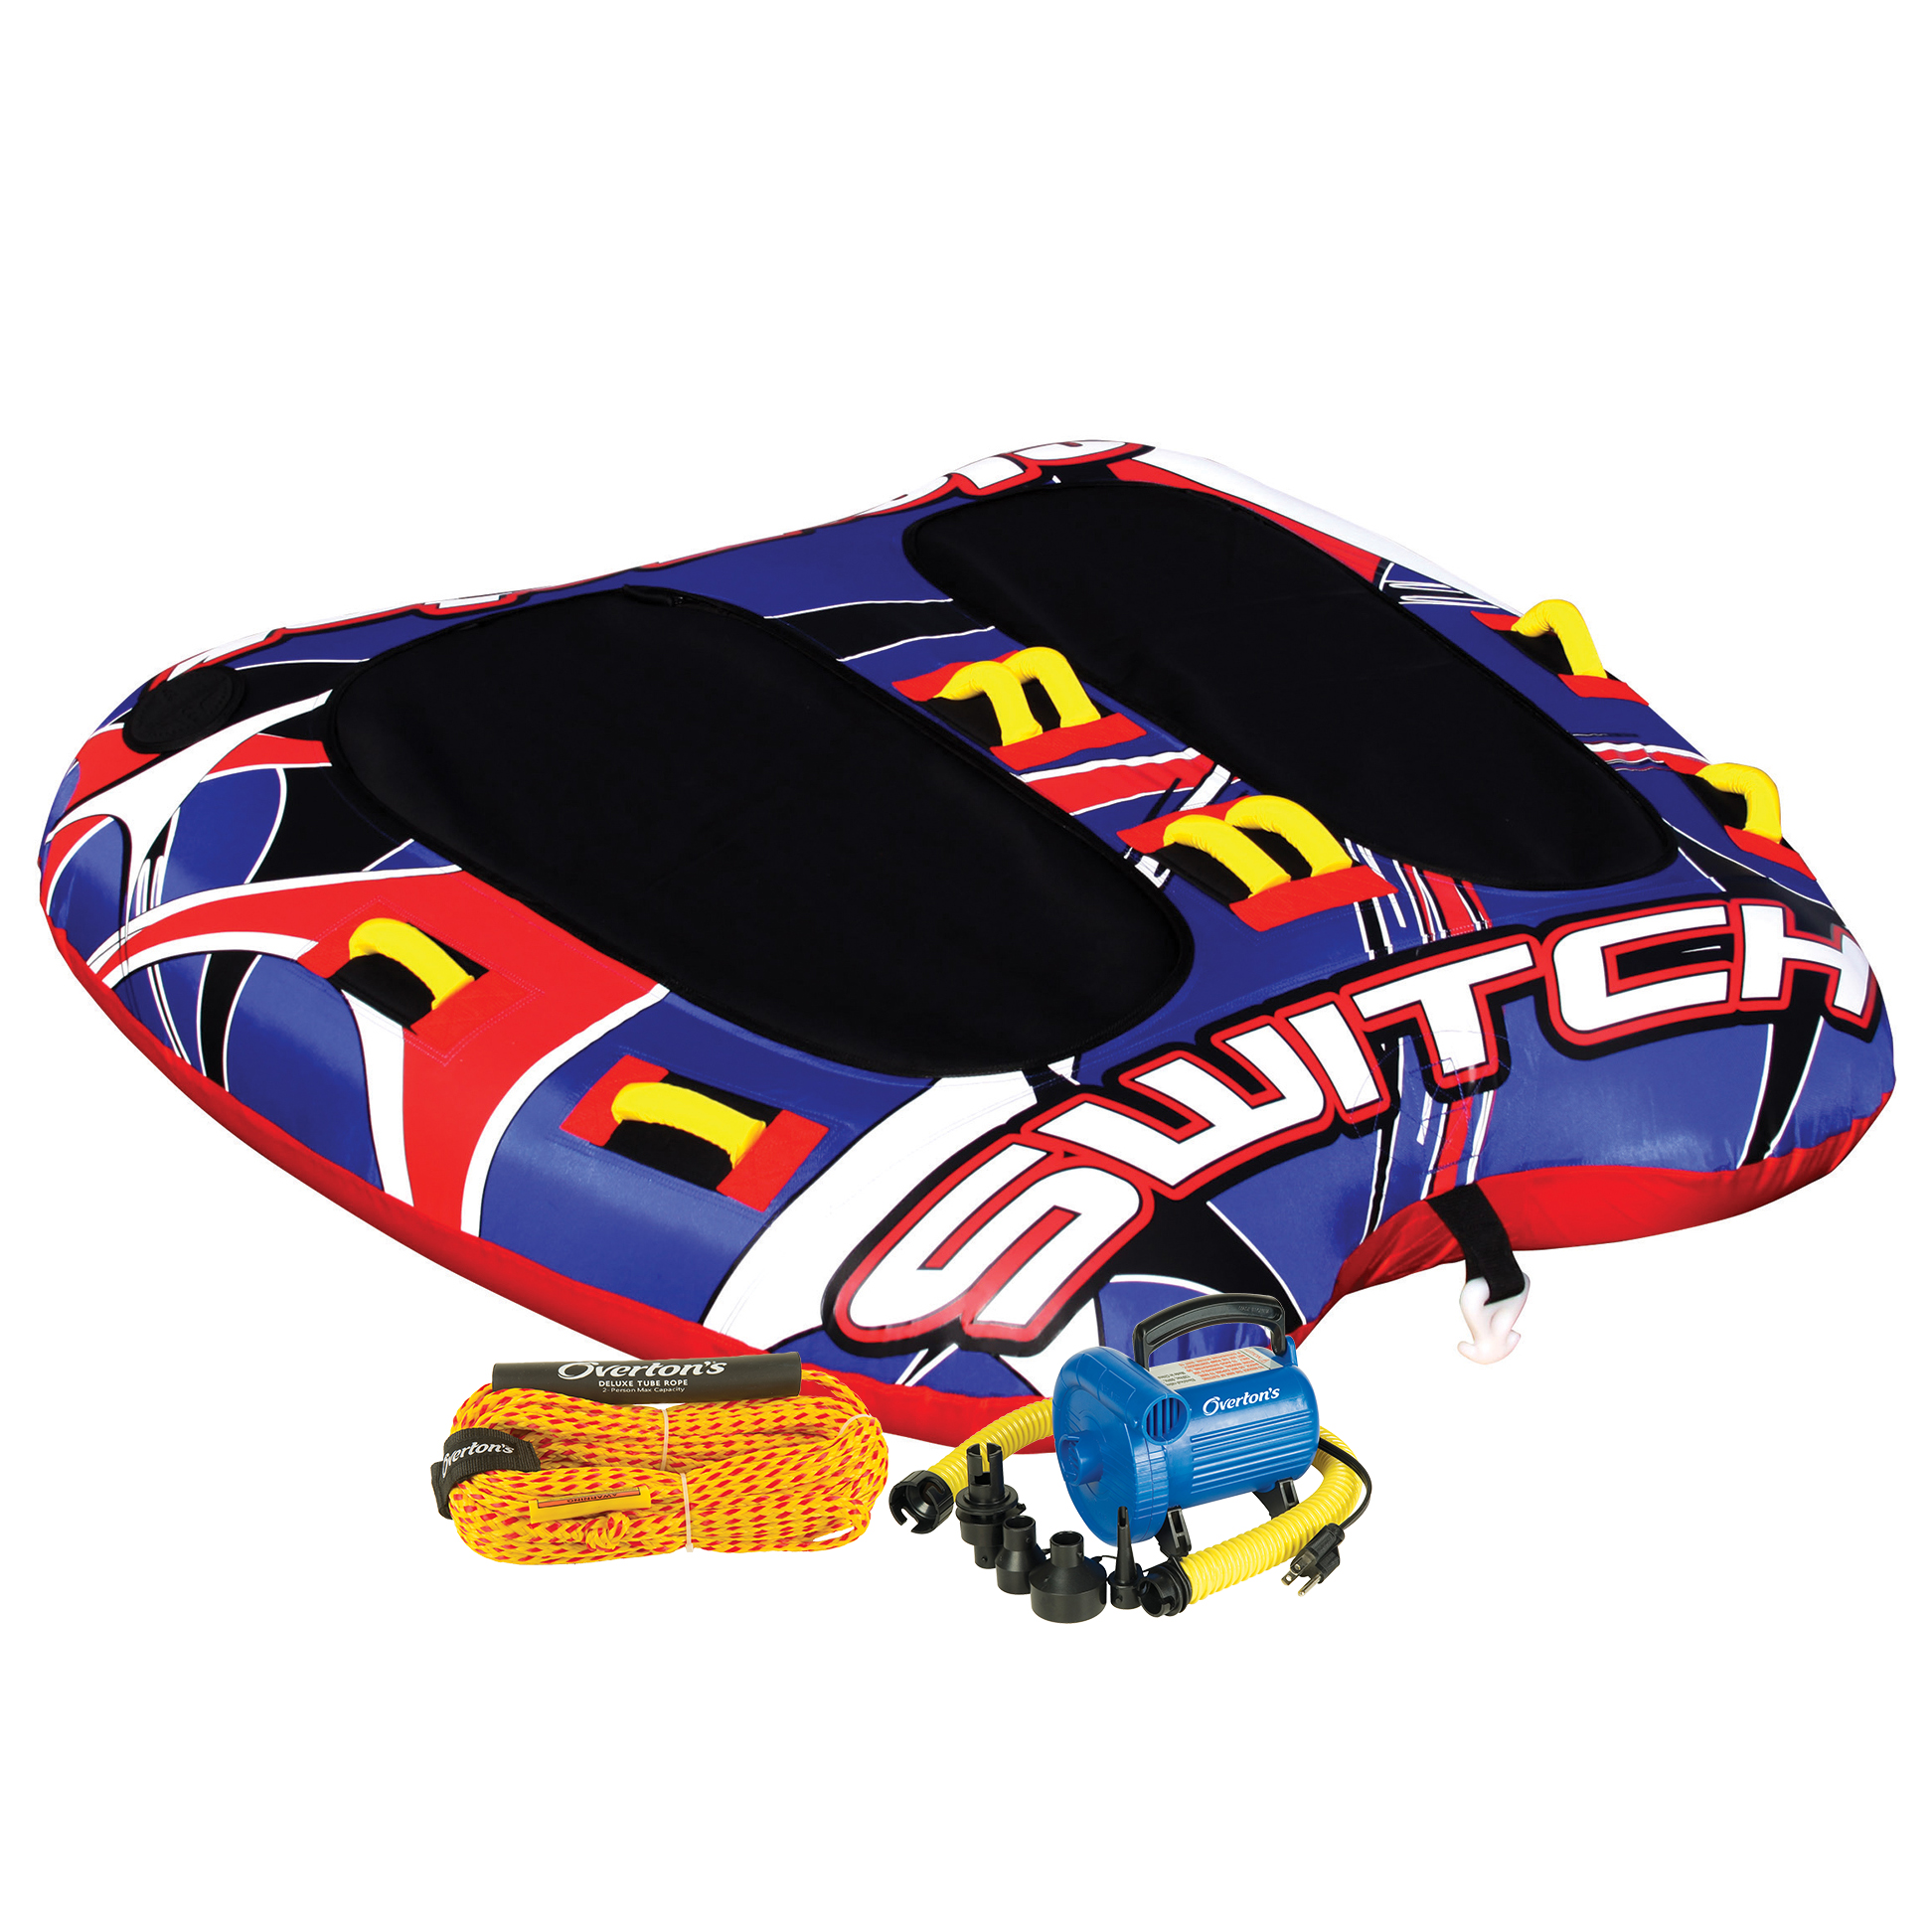 Gladiator Switch 2-Person Towable Tube Package